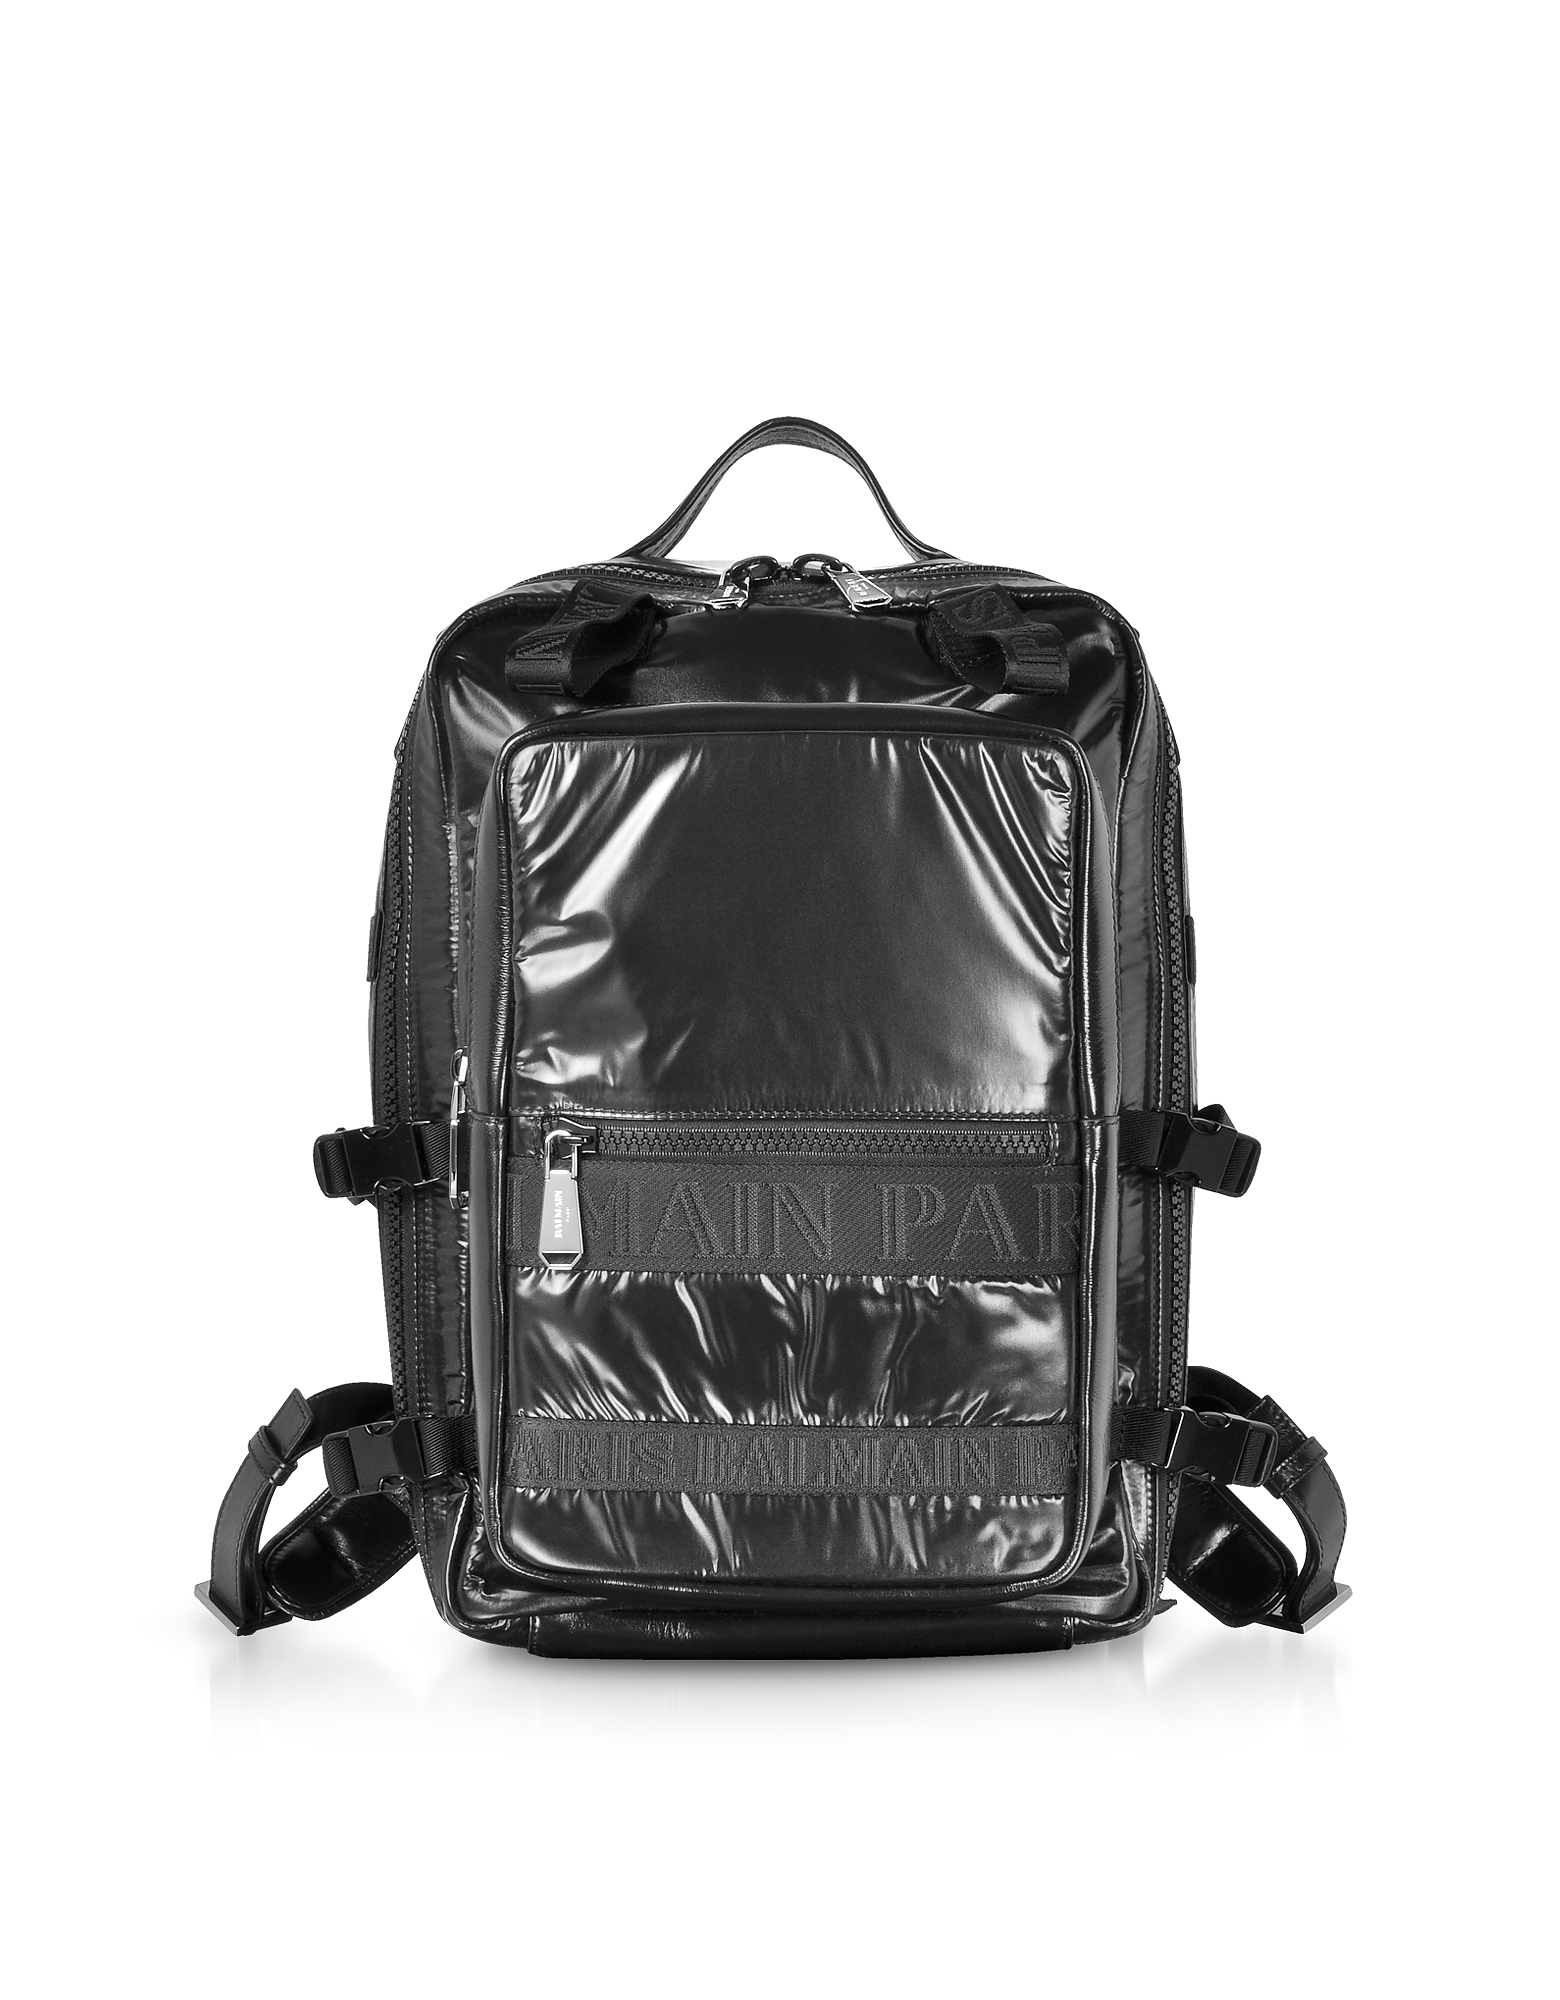 Image of Balmain Designer Backpacks, Black Quilted Nylon and Shiny Leather Men's Backpack